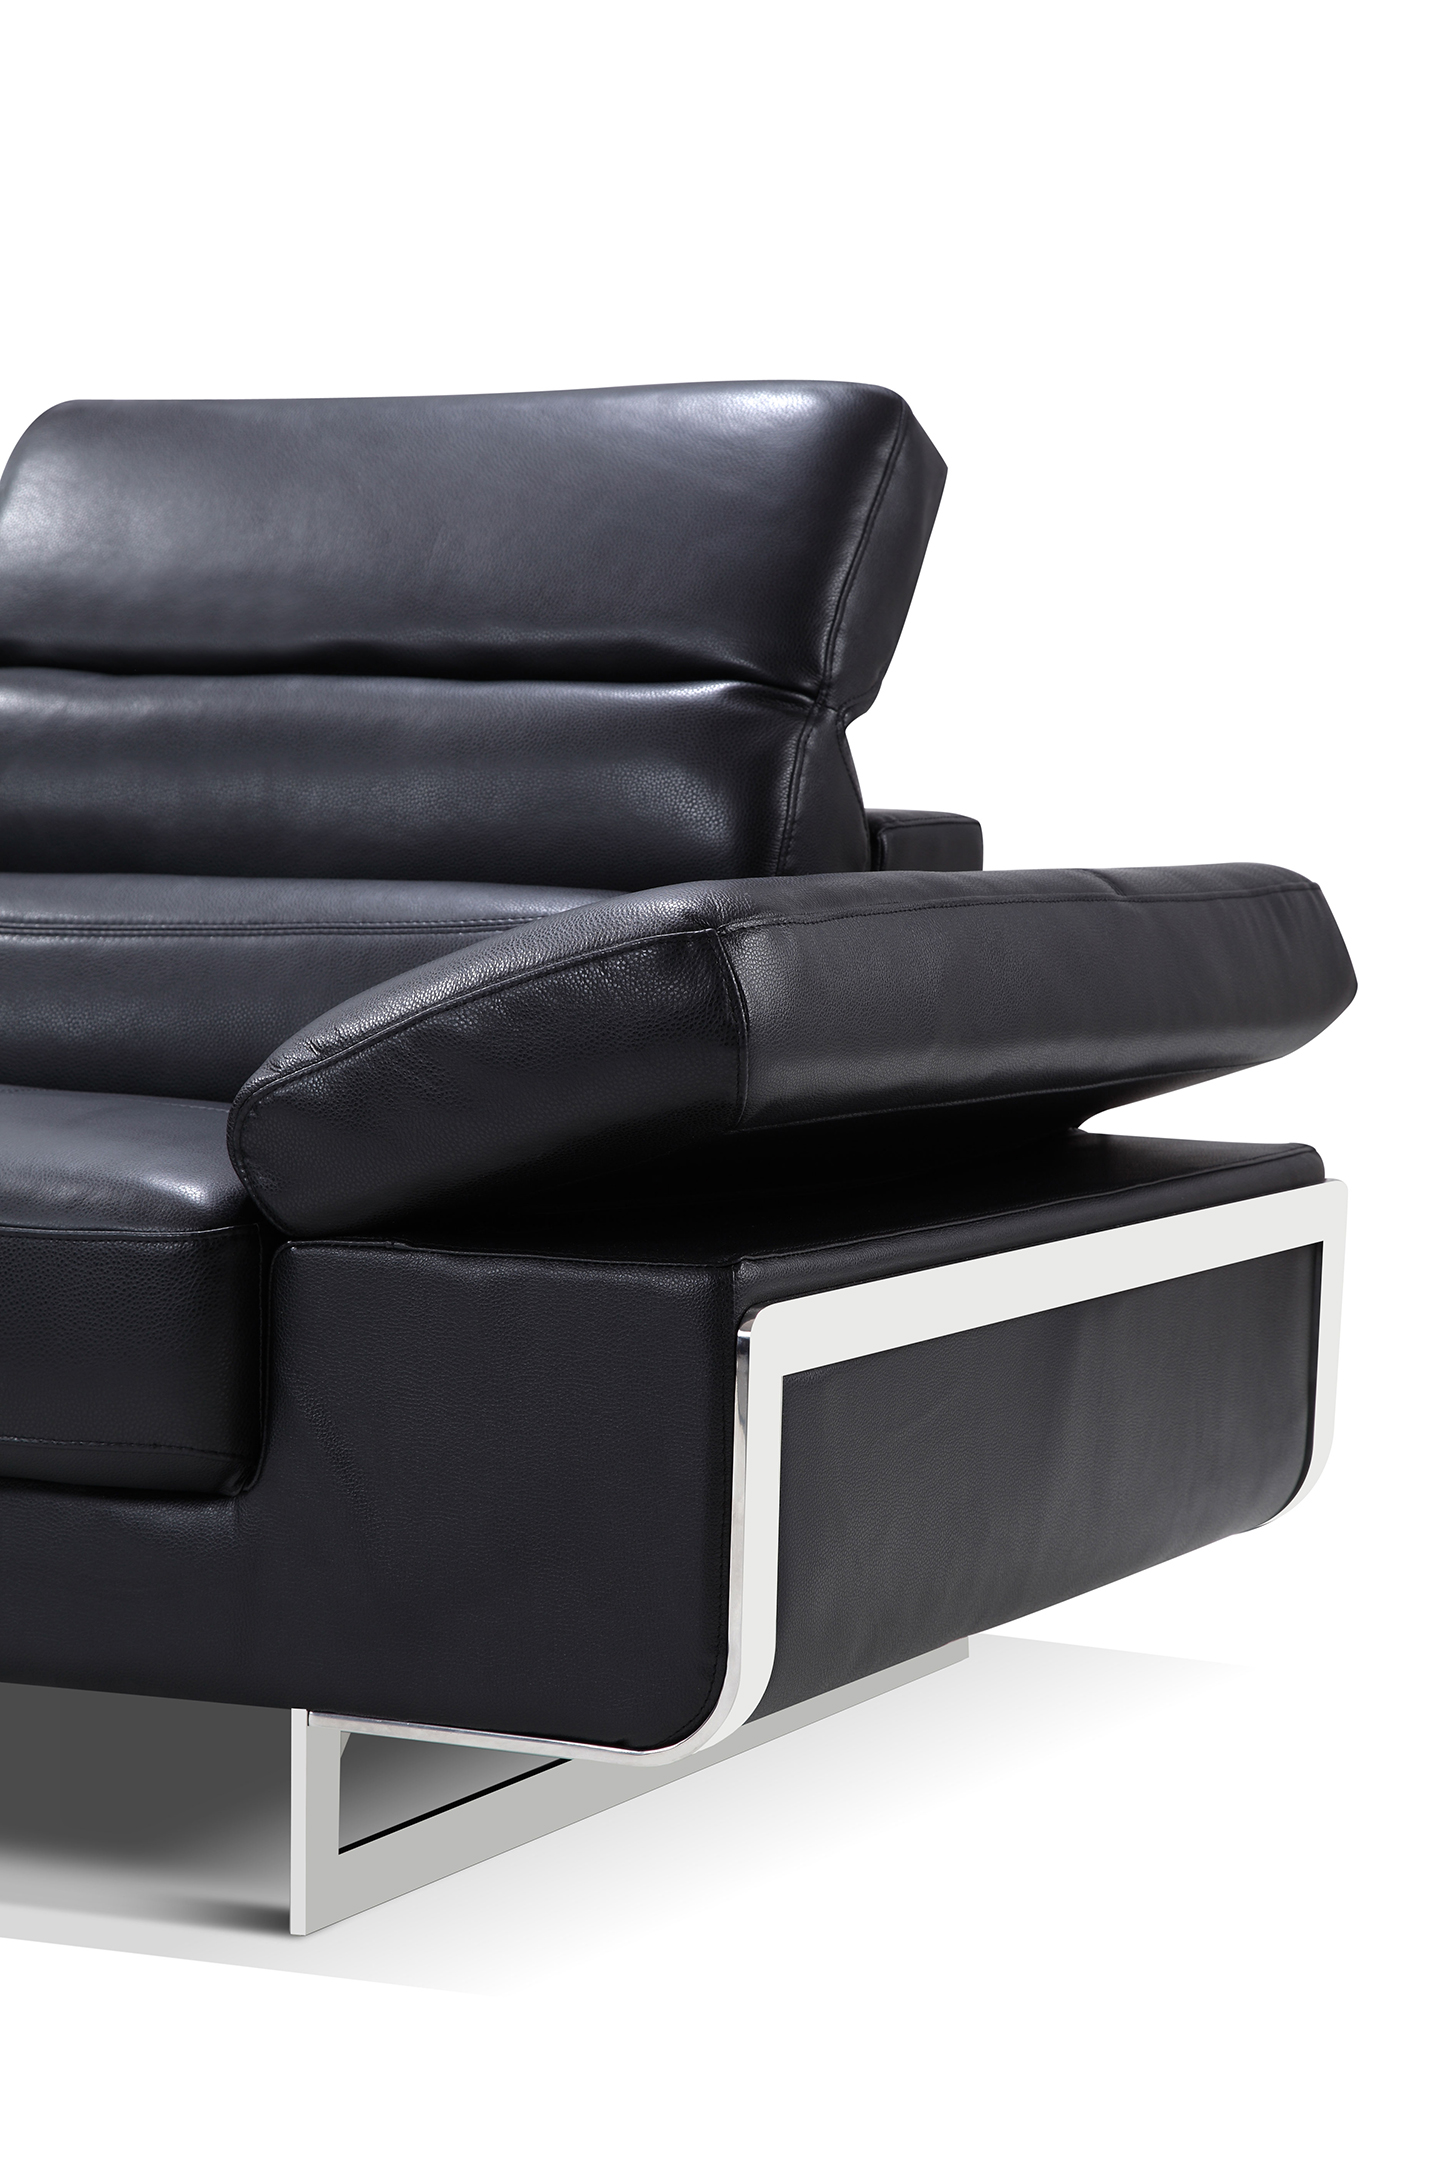 Leather Furniture Reviews Durable Sofa Chinaklsk